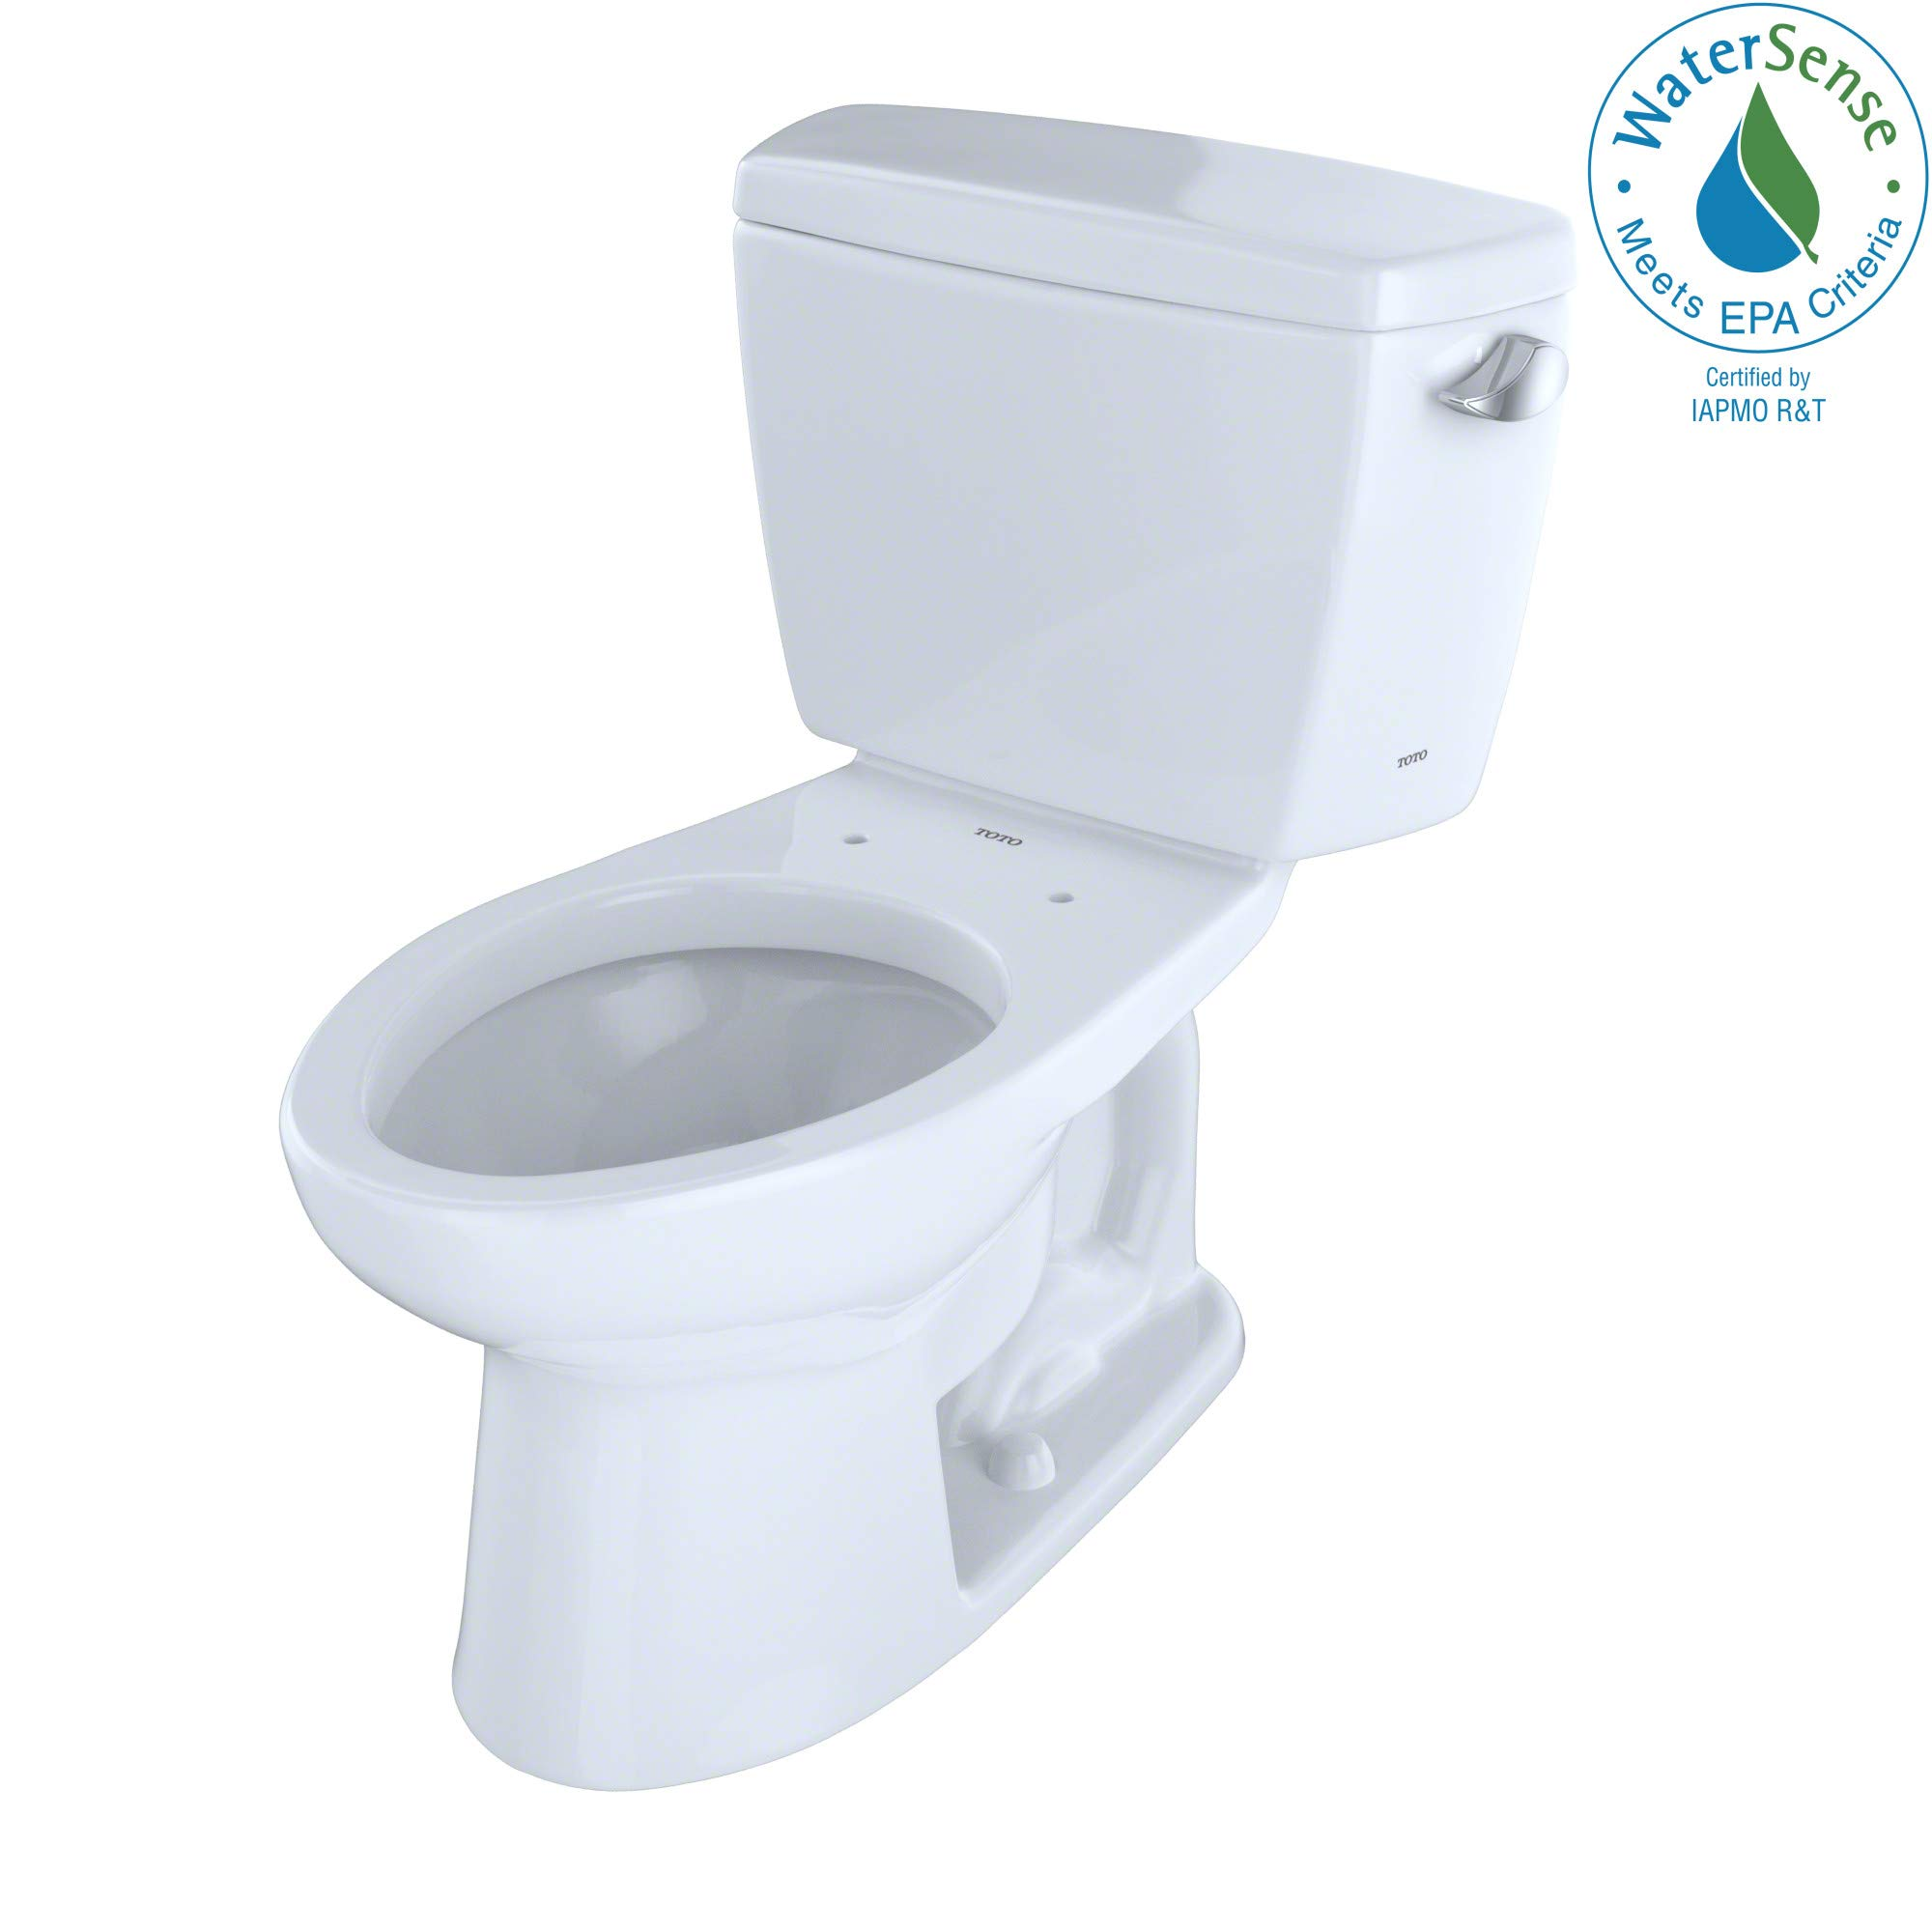 Toto CST744ERBNo.01 Eco Drake Toilet 1.28-GPF with Right Hand Trip Lever and Boltdown Tank Lid Cotton